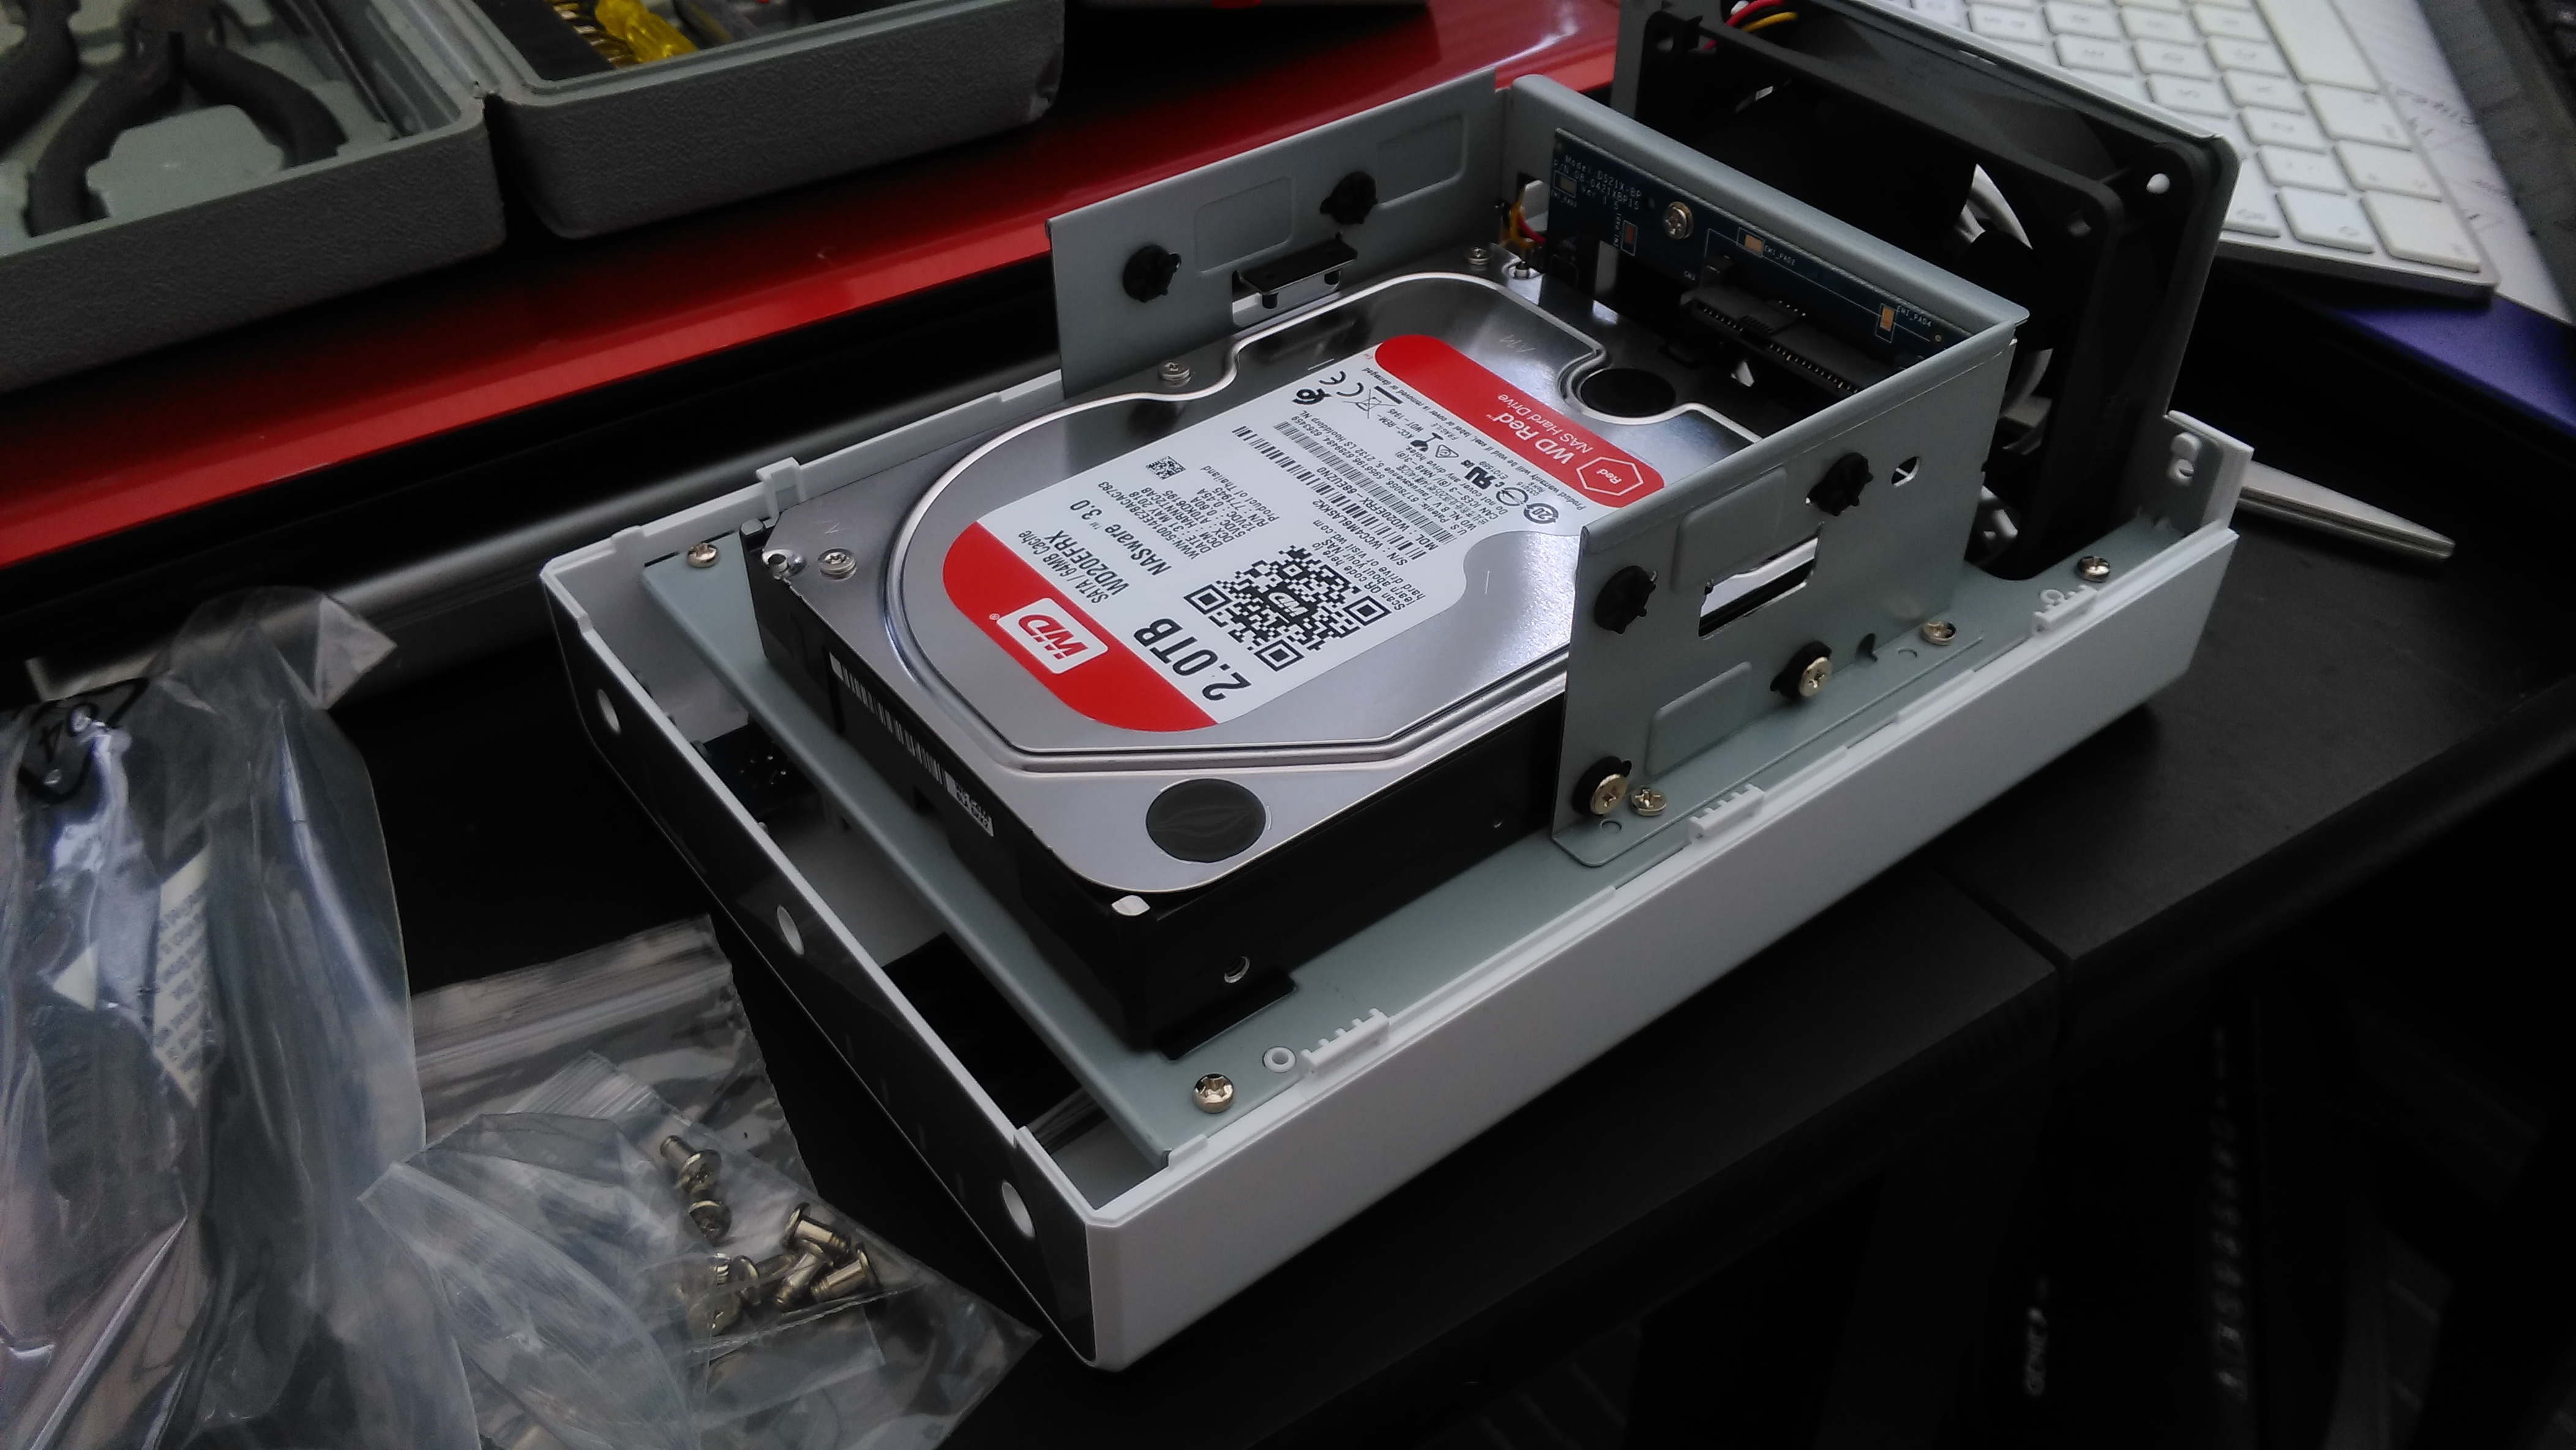 Installing Hard Drives in a Synology DS218j